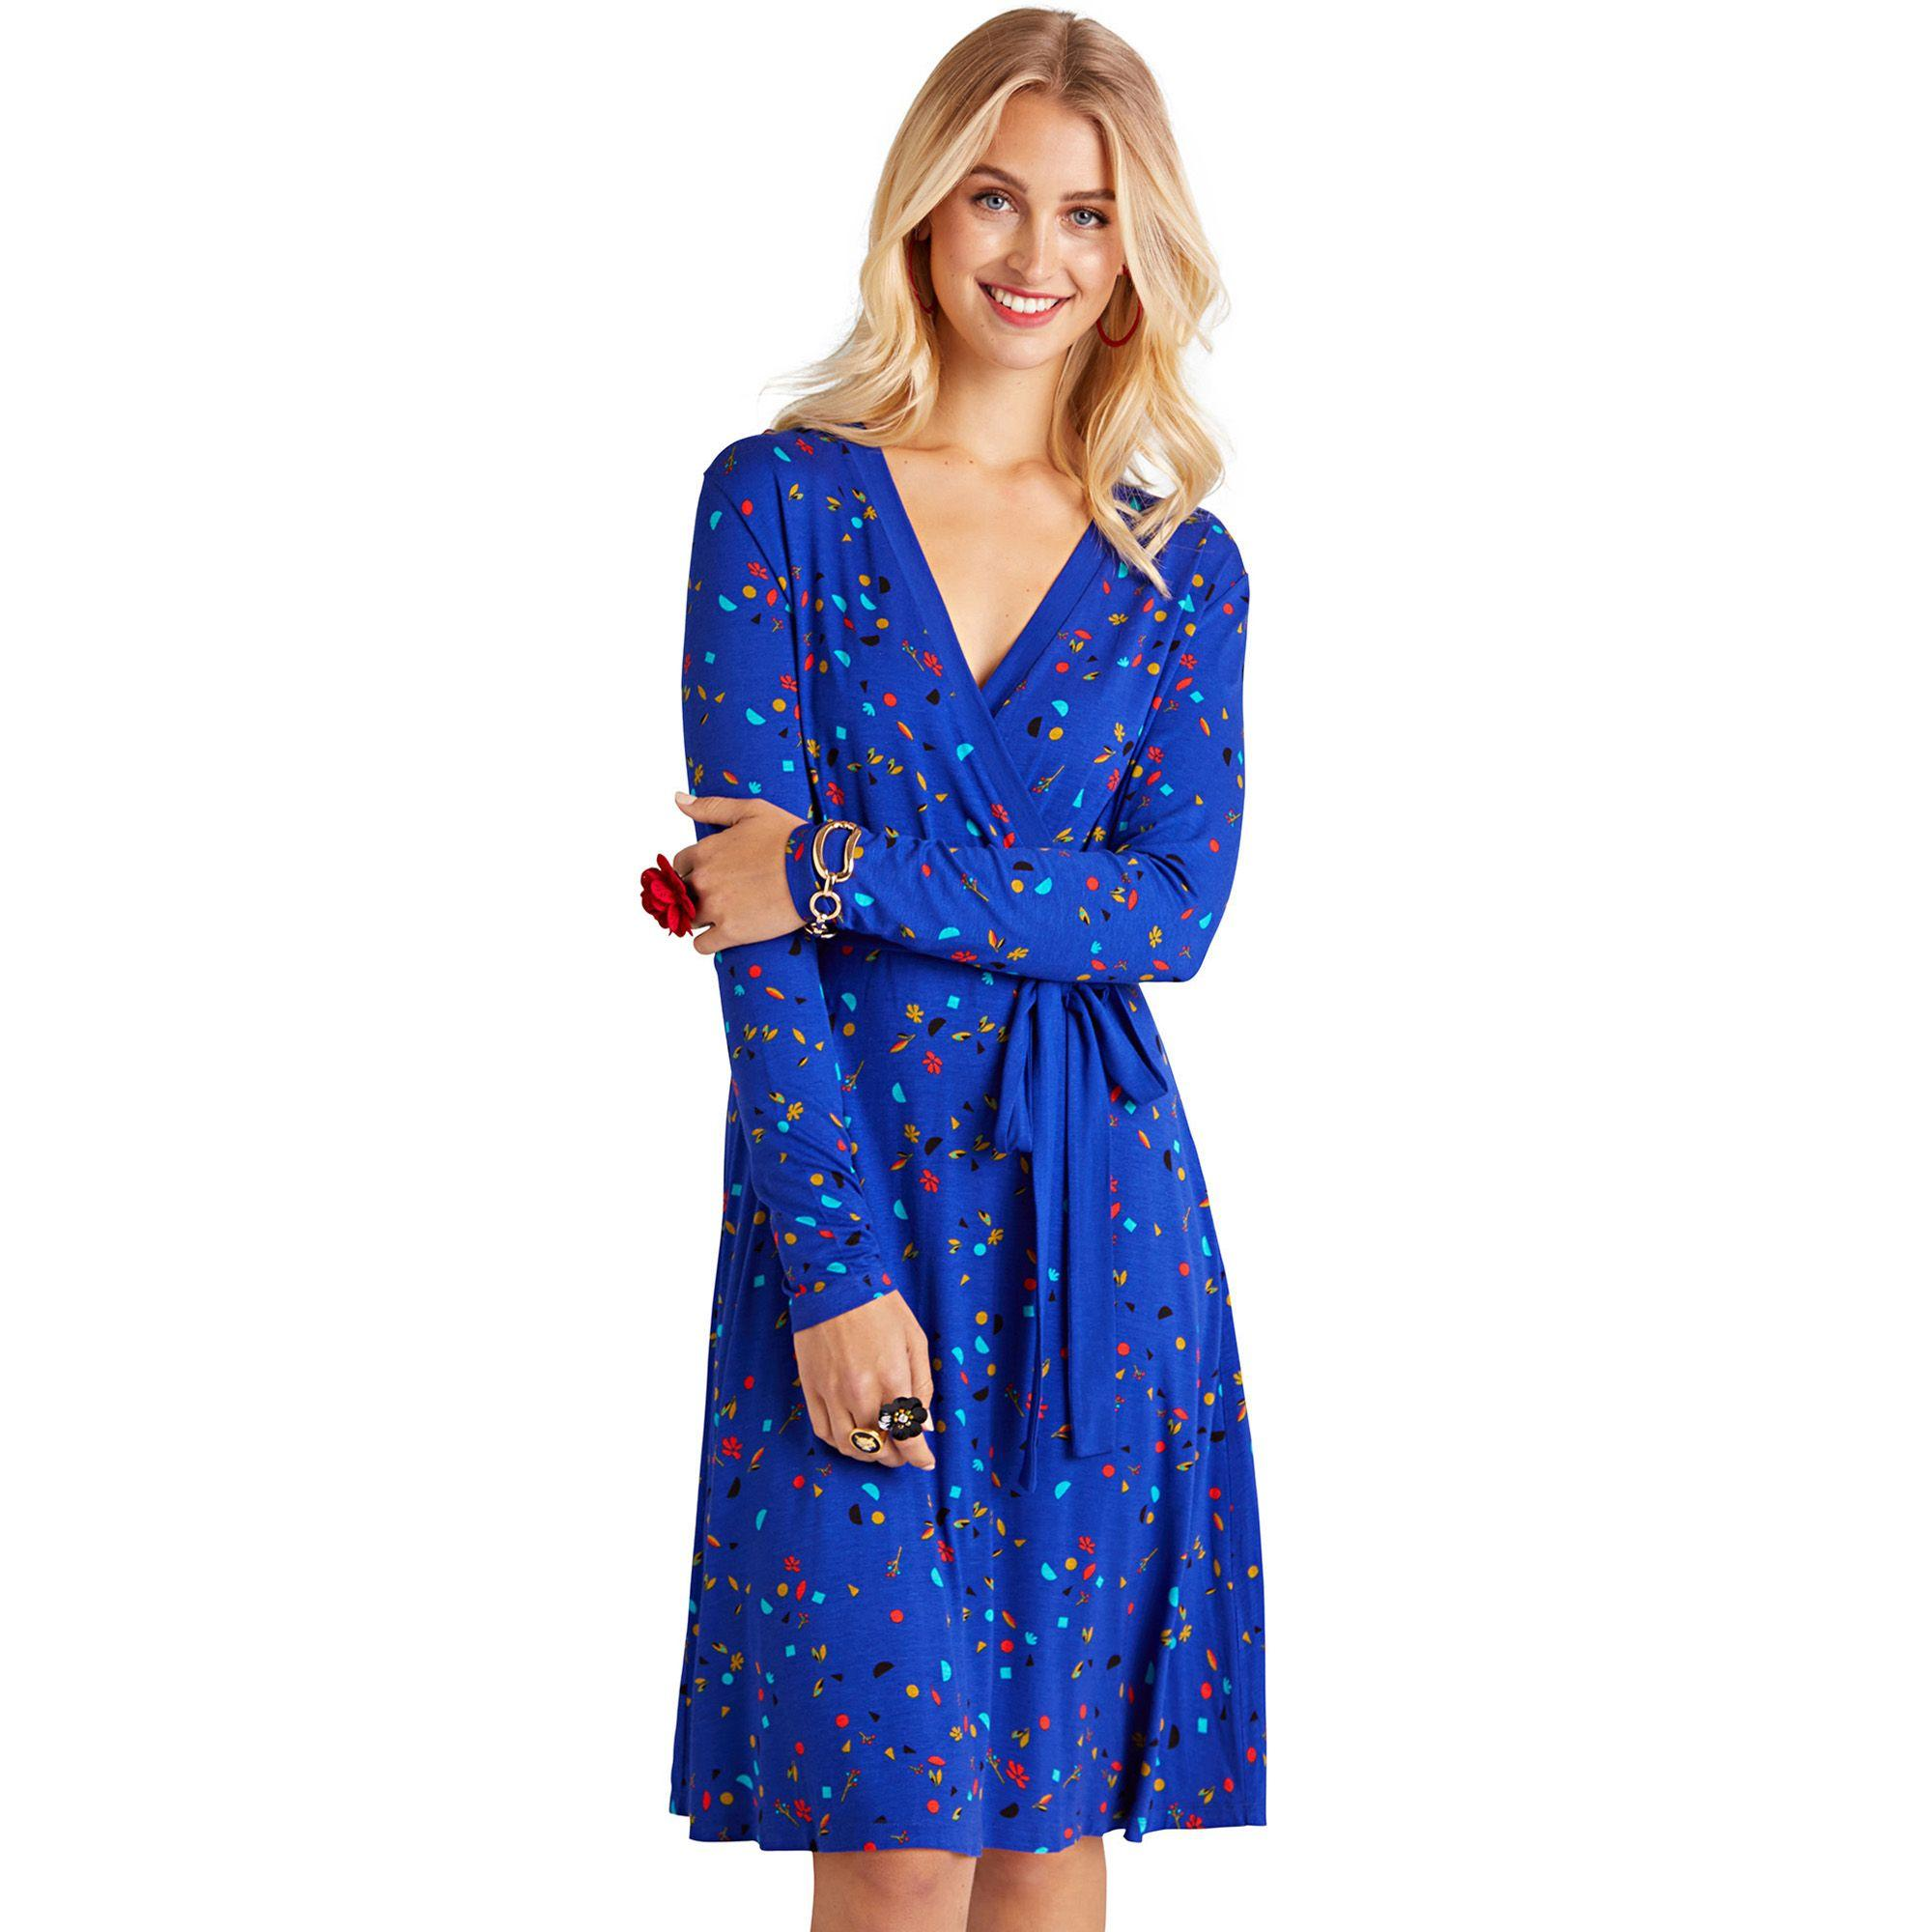 51de4bba13d7 Yumi  Blue Abstract Printed Jersey Wrap Dress in Blue - Lyst